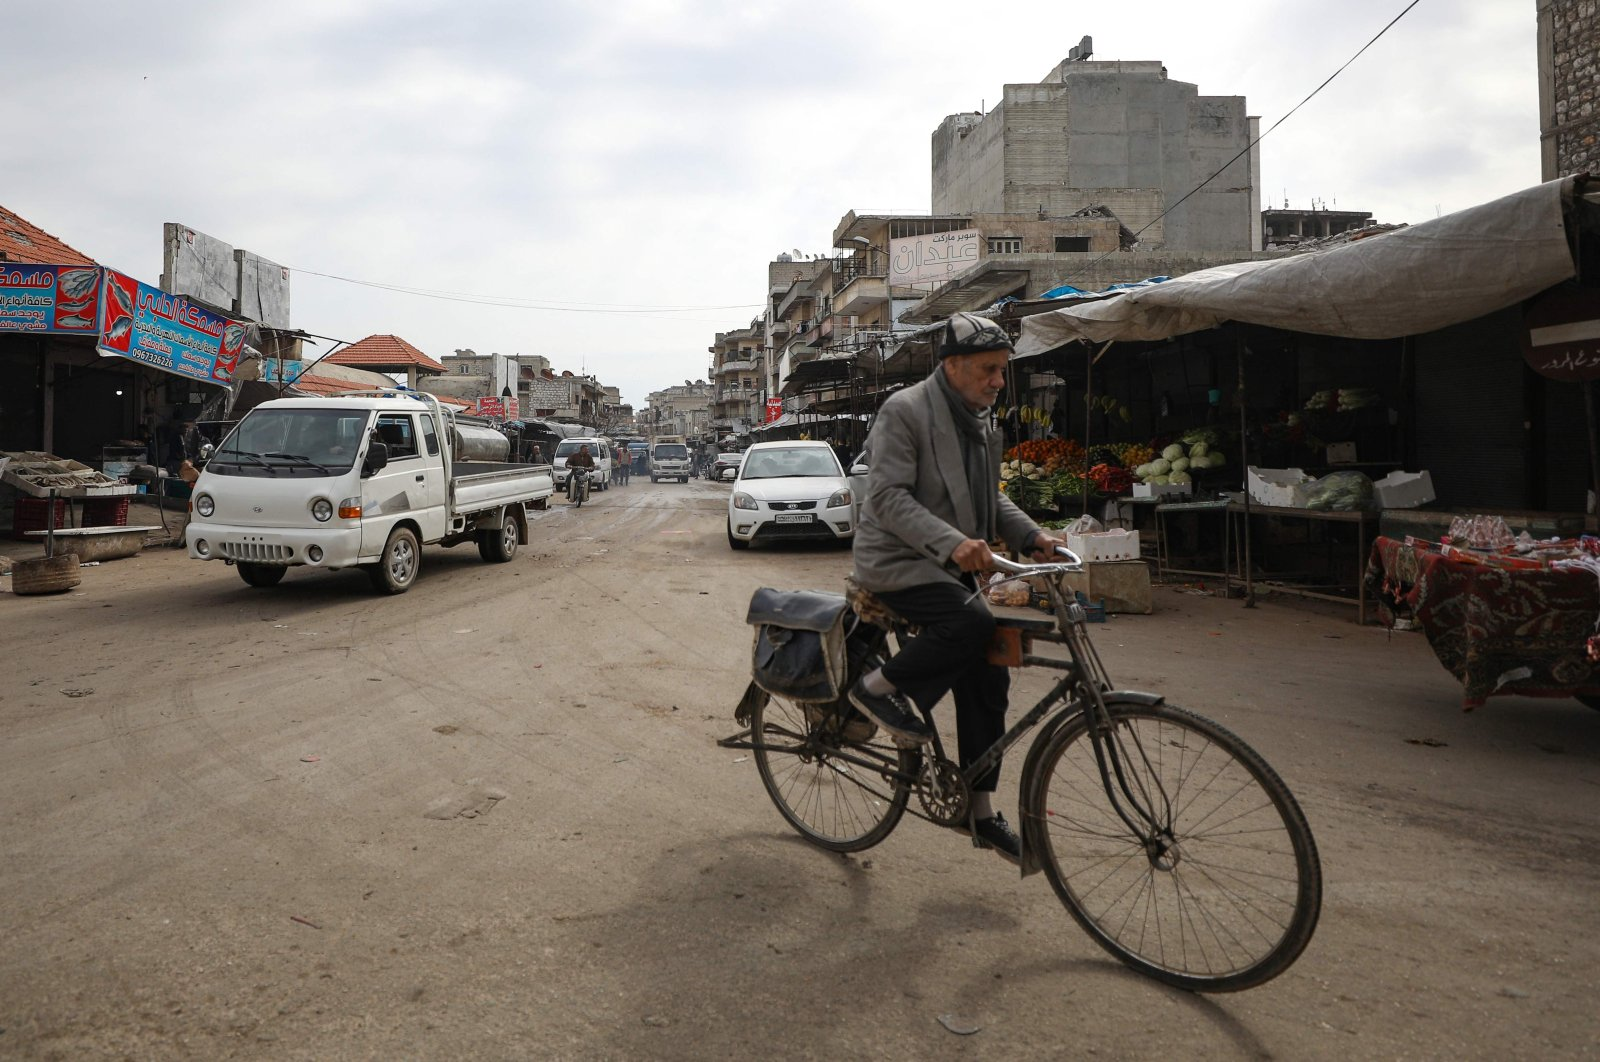 A man rides his bicycle in a street of the northwestern Syrian city of Idlib on March 6, 2020. - Syria's war-ravaged northwest woke up to relative calm today, its skies free of warplanes for the first day in months, following a Russian-Turkish ceasefire deal. (AFP Photo)